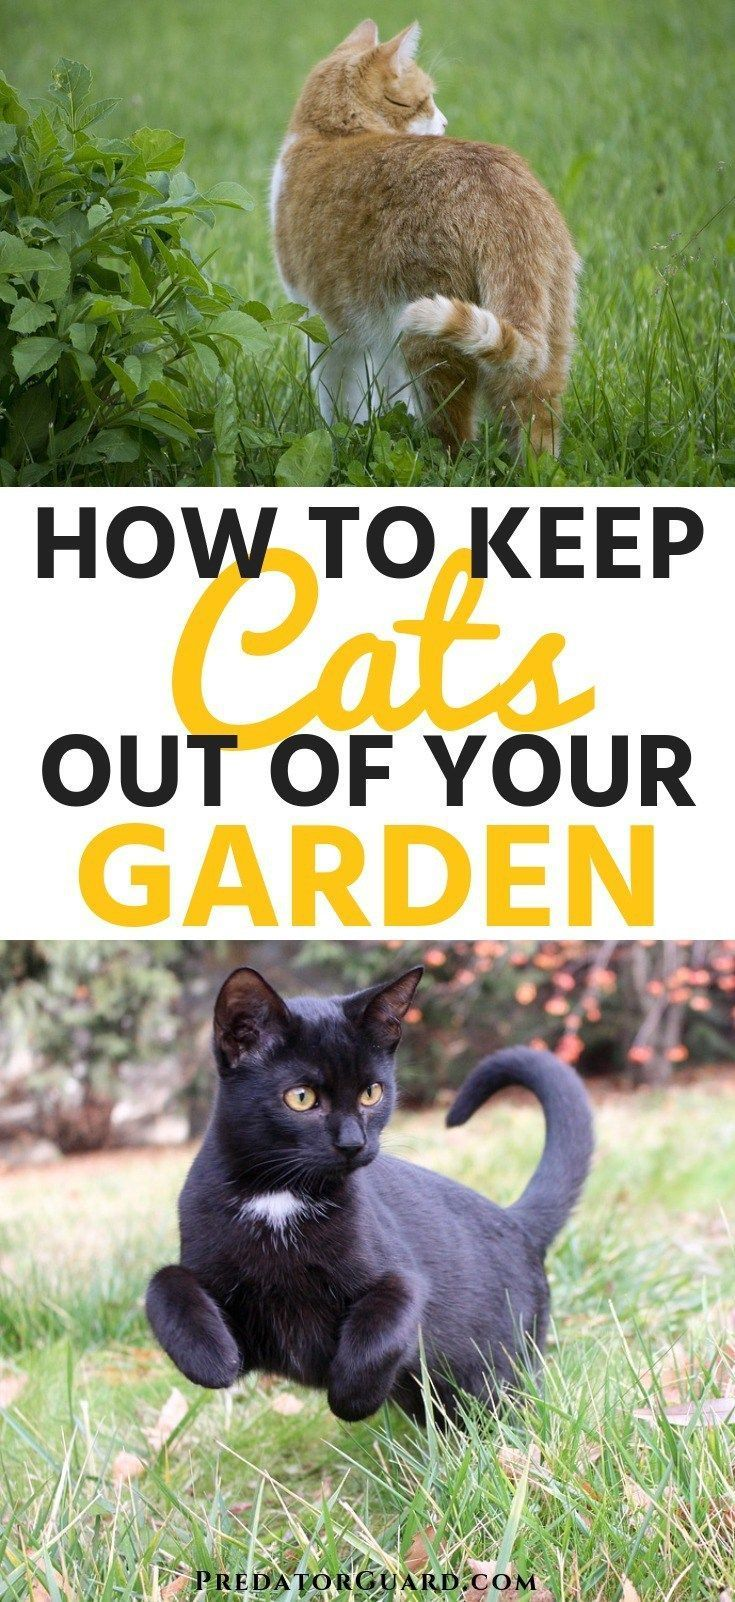 How To Keep Cats Out of Your Garden is part of Cat repellant garden, Cat garden, Garden animals, Backyard garden diy, Cat repellant outdoor, Quick garden - Learn how to keep cats out of your garden to protect your plants and yourself! As cute as cats are, allowing them to run free in your garden isn't always